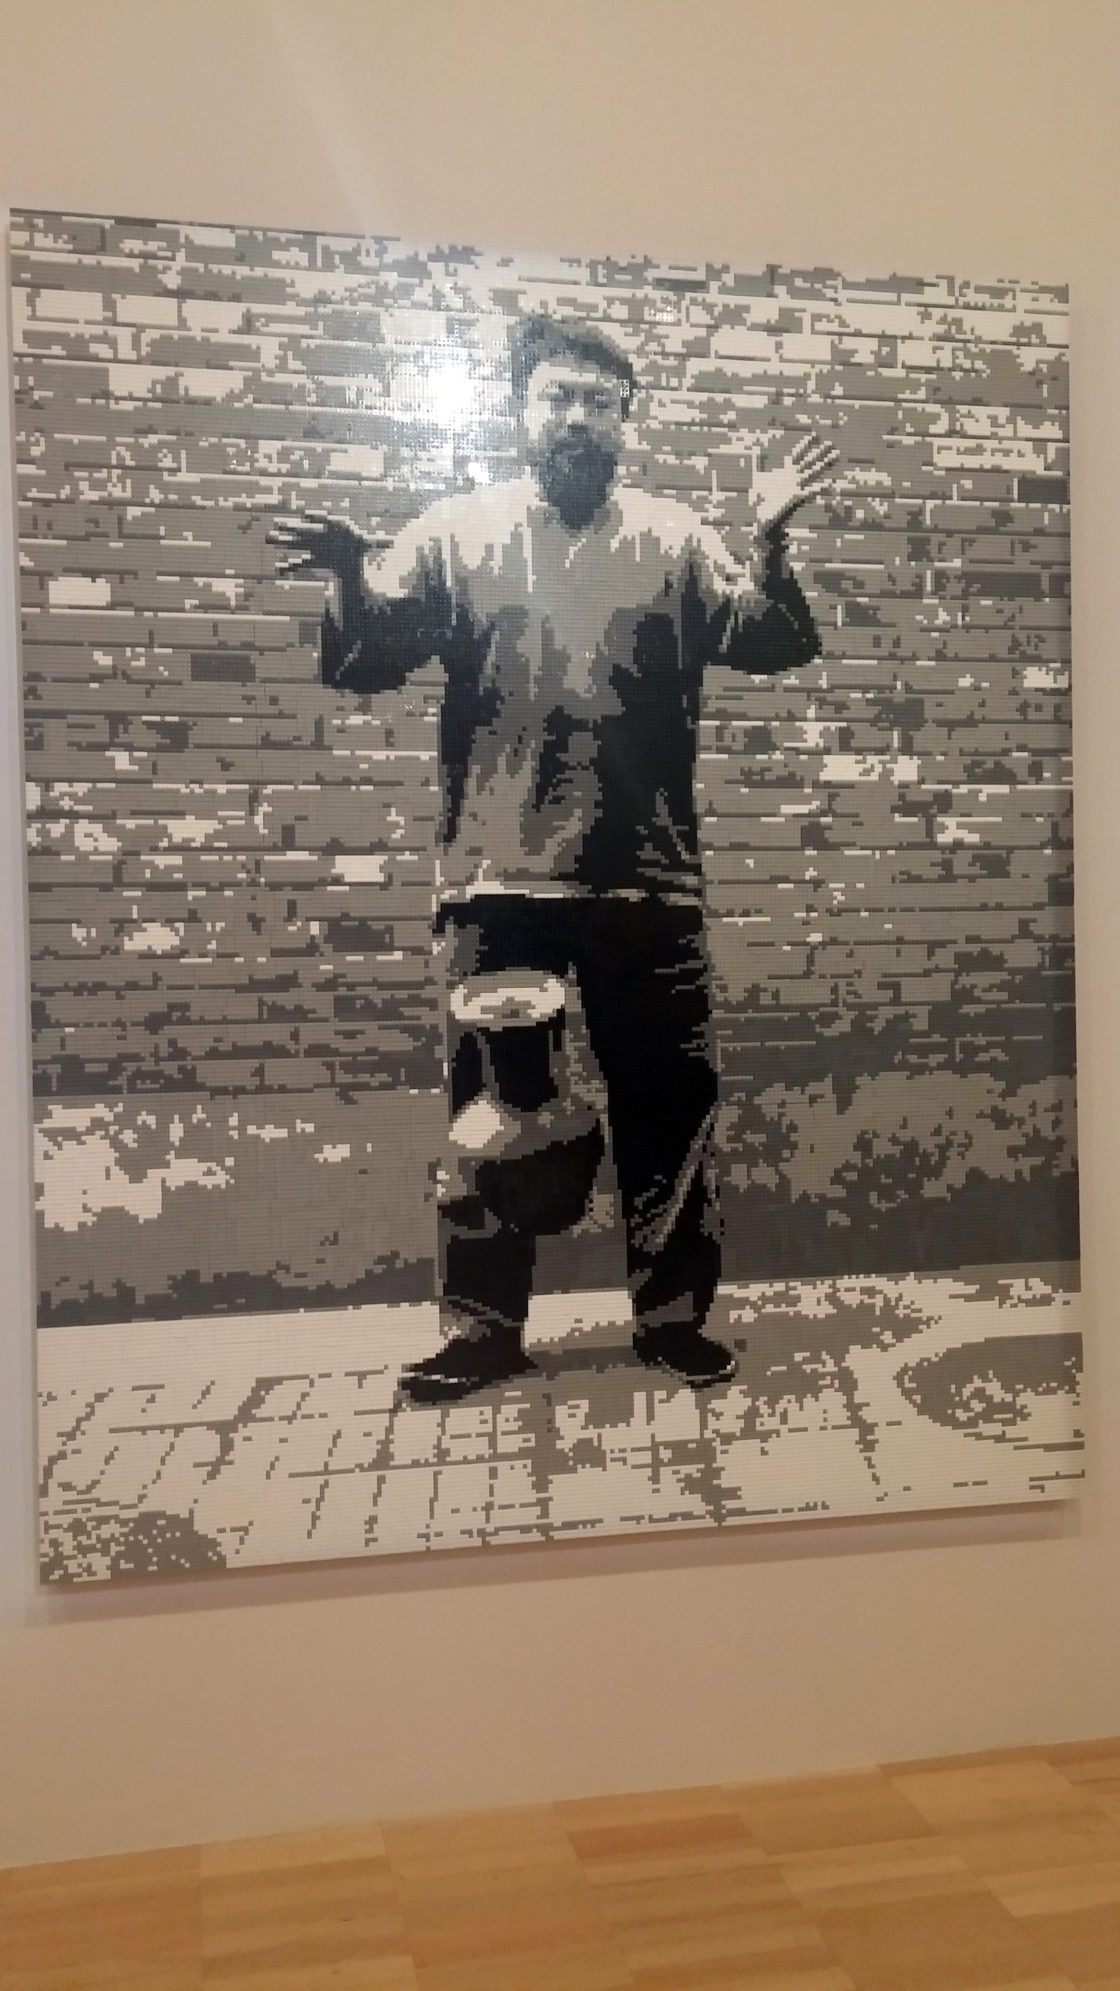 ANDY WARHOL & AI WEIWEI. National Gallery of Victoria